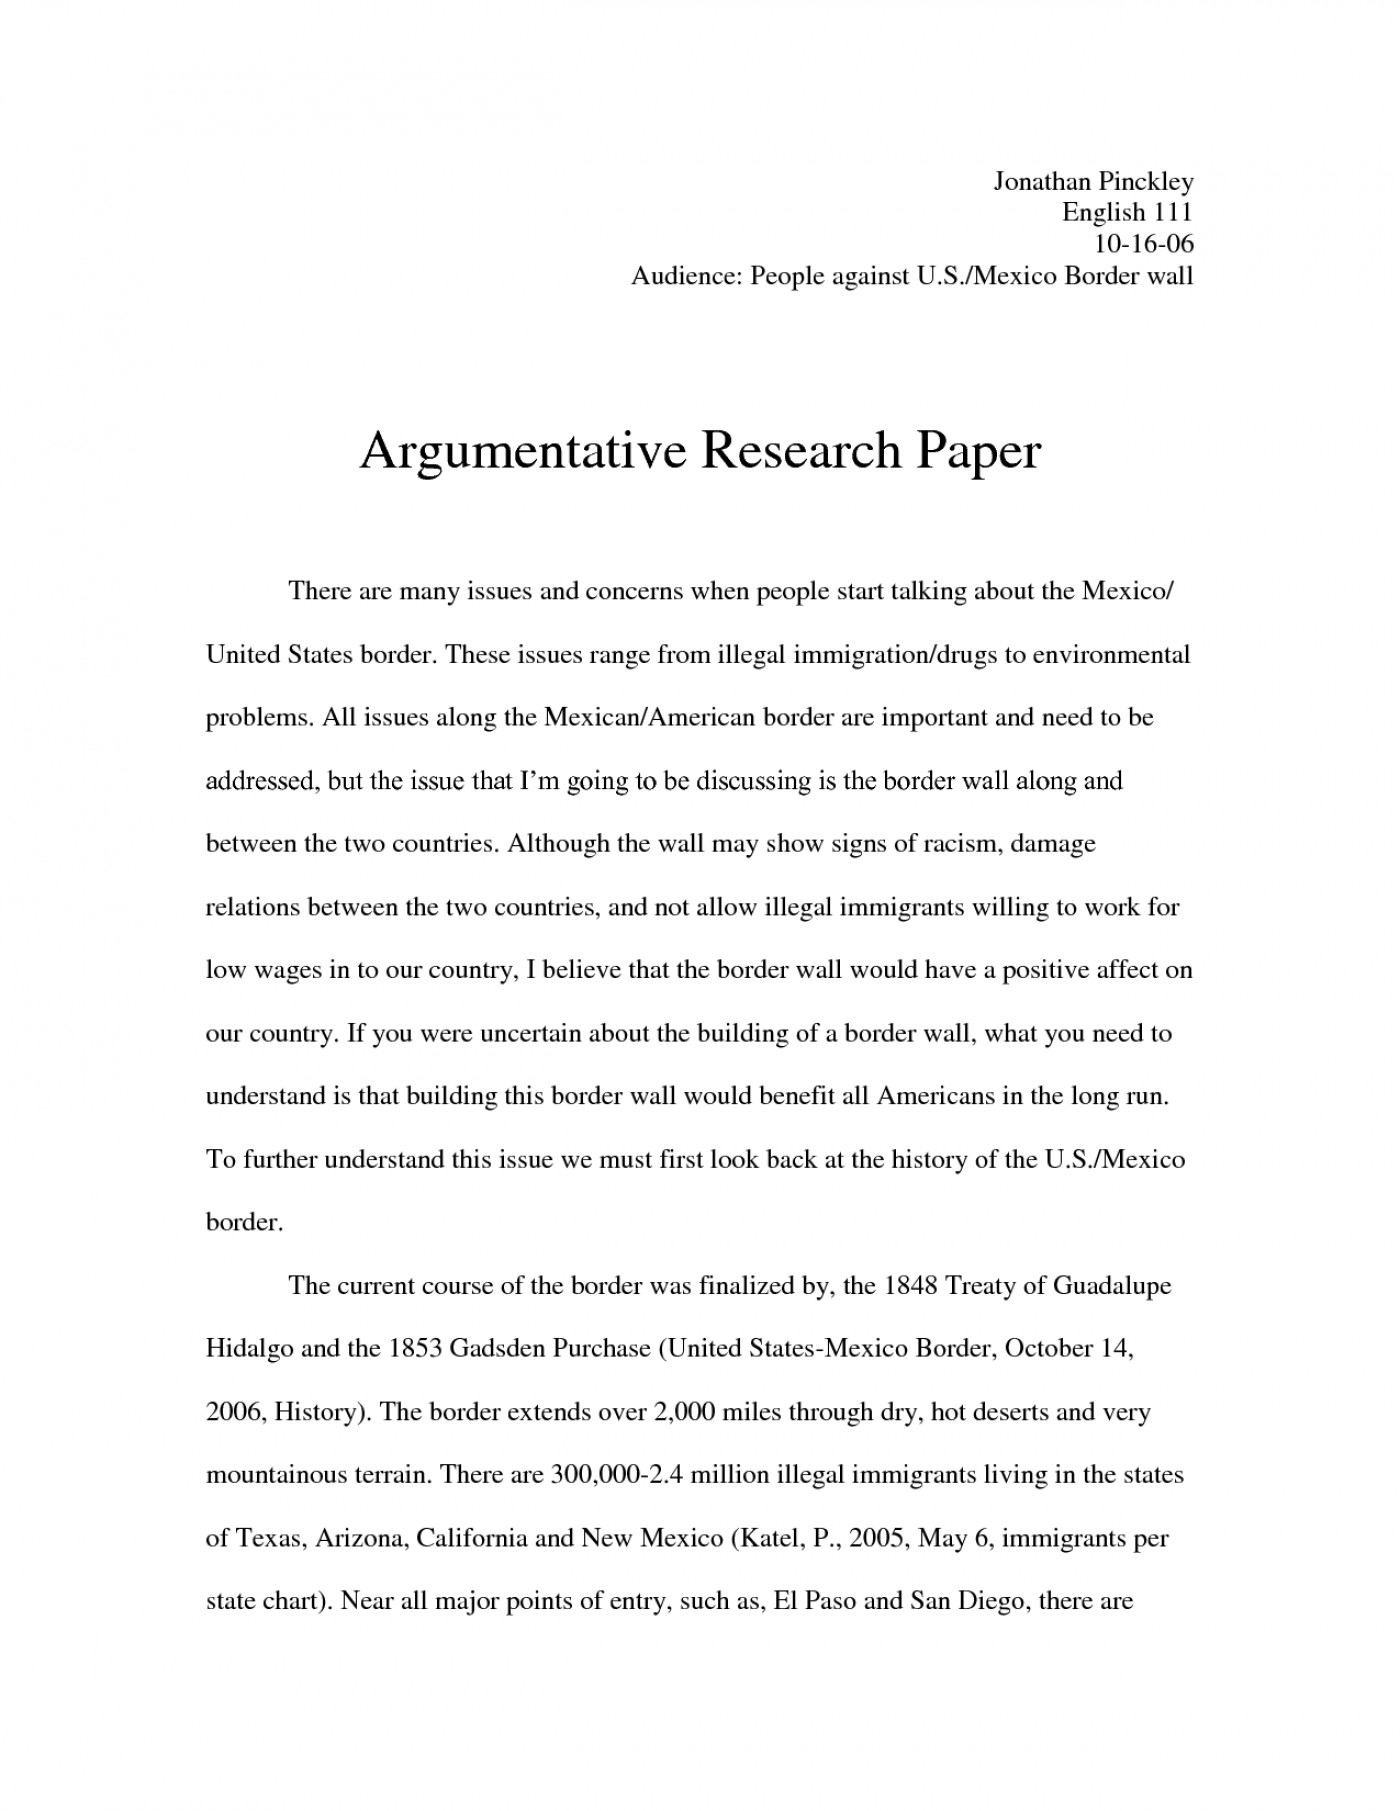 014 Uncategorized Debate20y Argumentative Thesis High School Topics Sentence Starters Outline Worksheet Structure20 For Research Rare A Paper Interesting Medical 1400